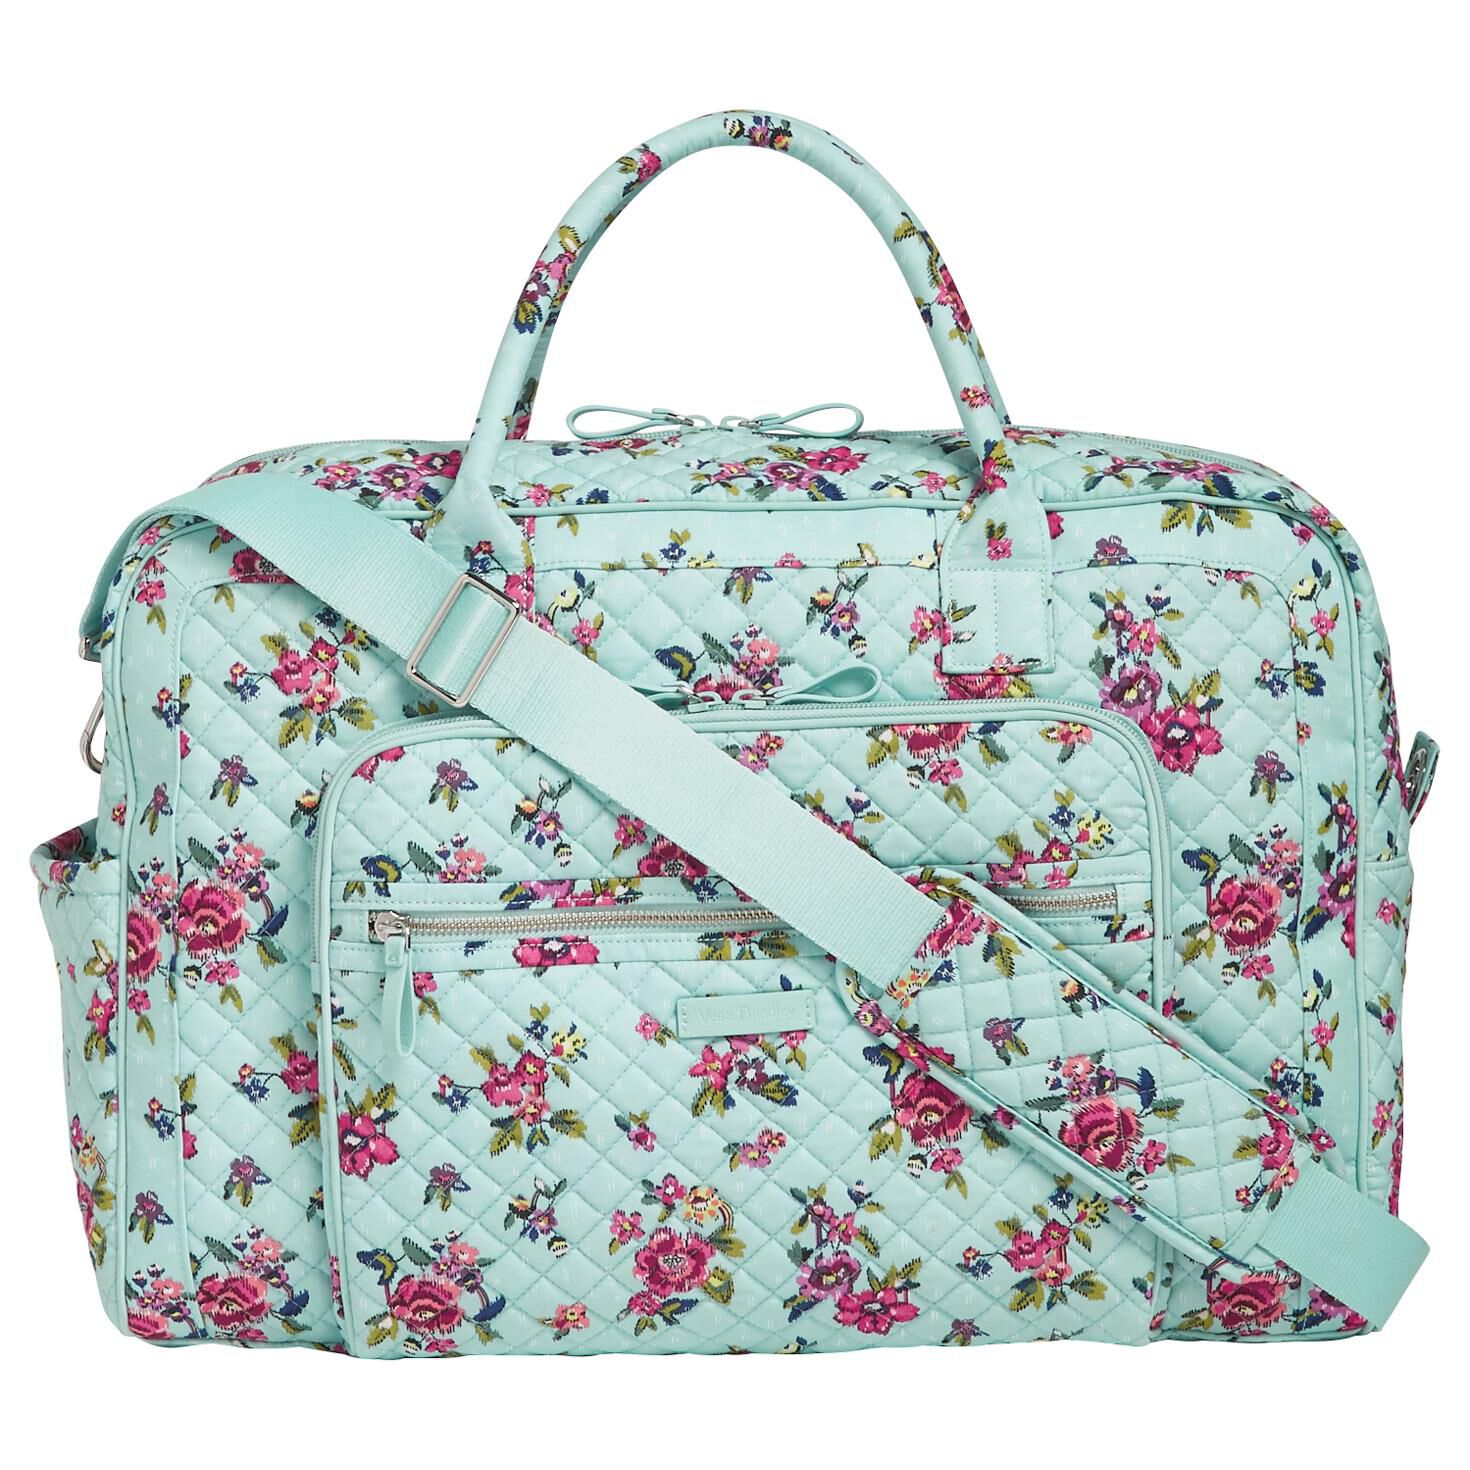 Vera Bradley Iconic Weekender Travel Bag in Water Bouquet - Travel -  Hallmark 0ae47f2b3e533